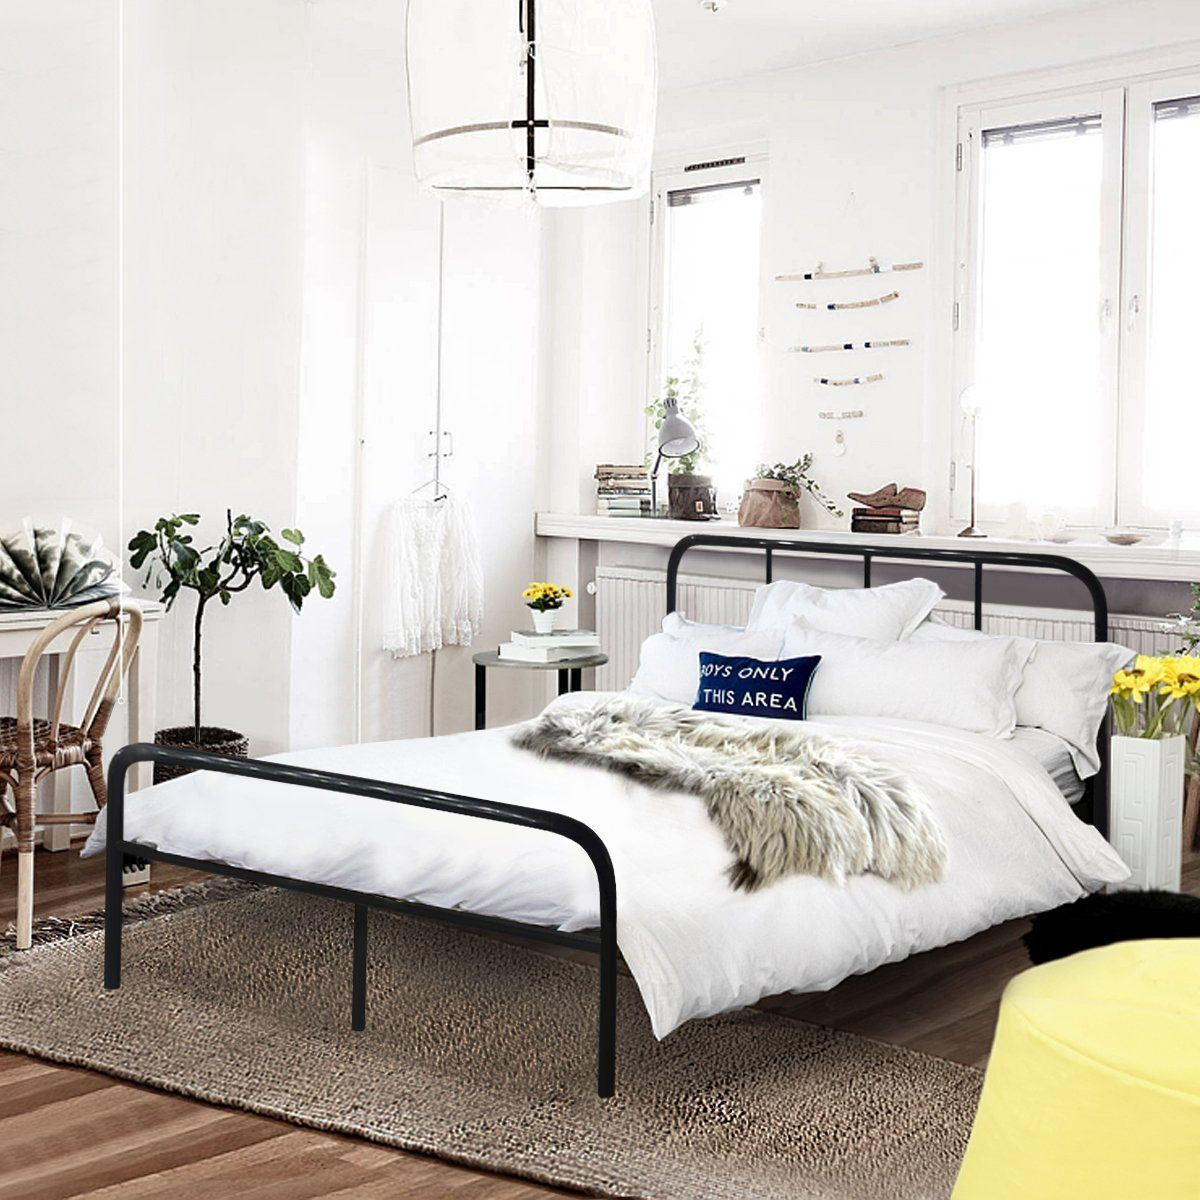 Storage Ideas For Small Bedrooms: 20 Space Saving Tips For